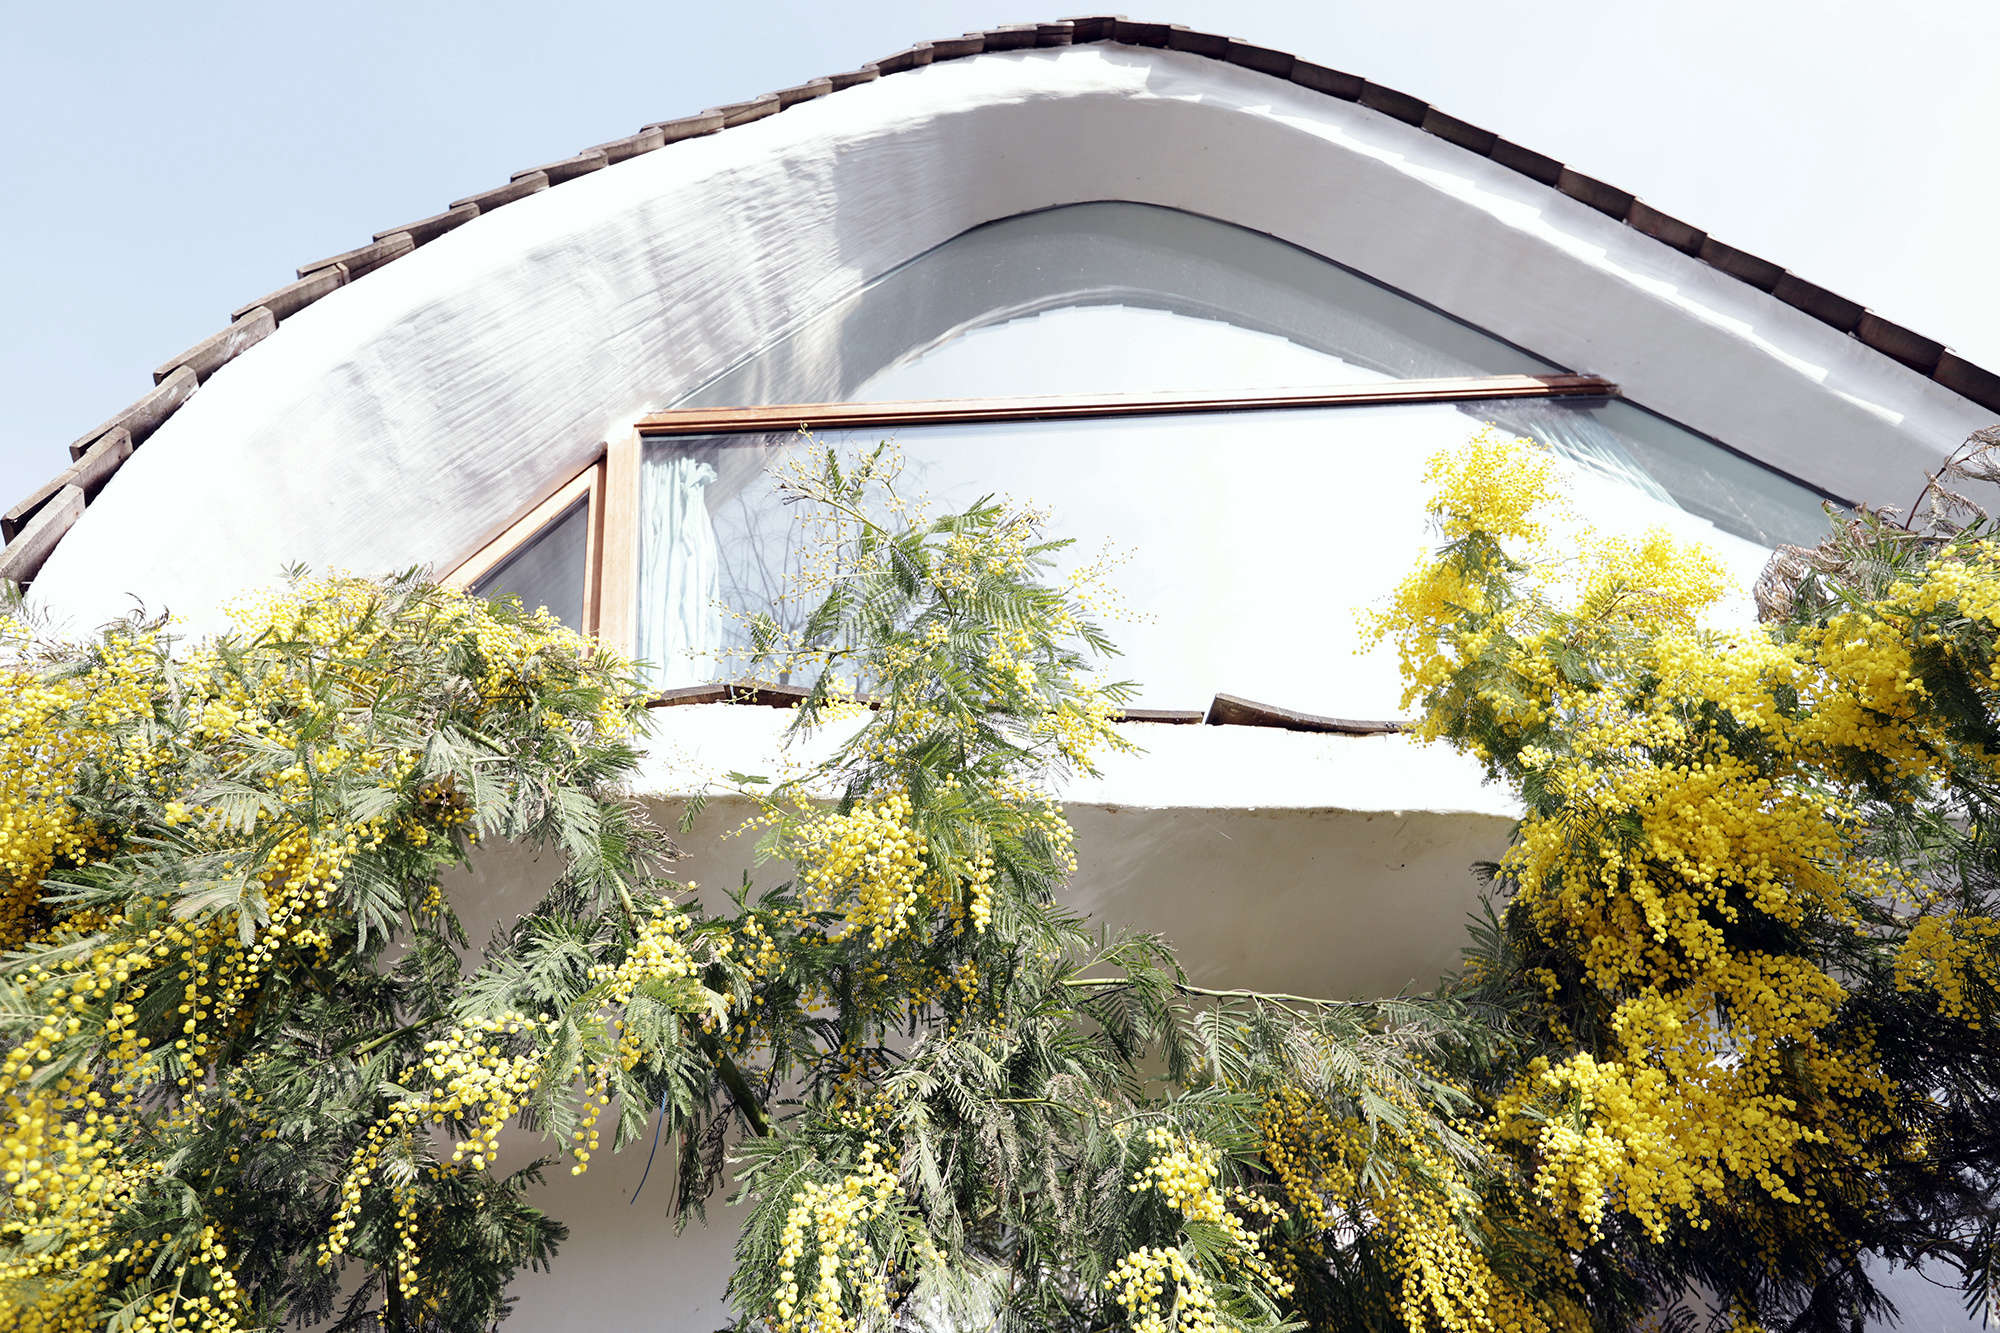 A large mimosa tree in bloom meets the second floor of the house.